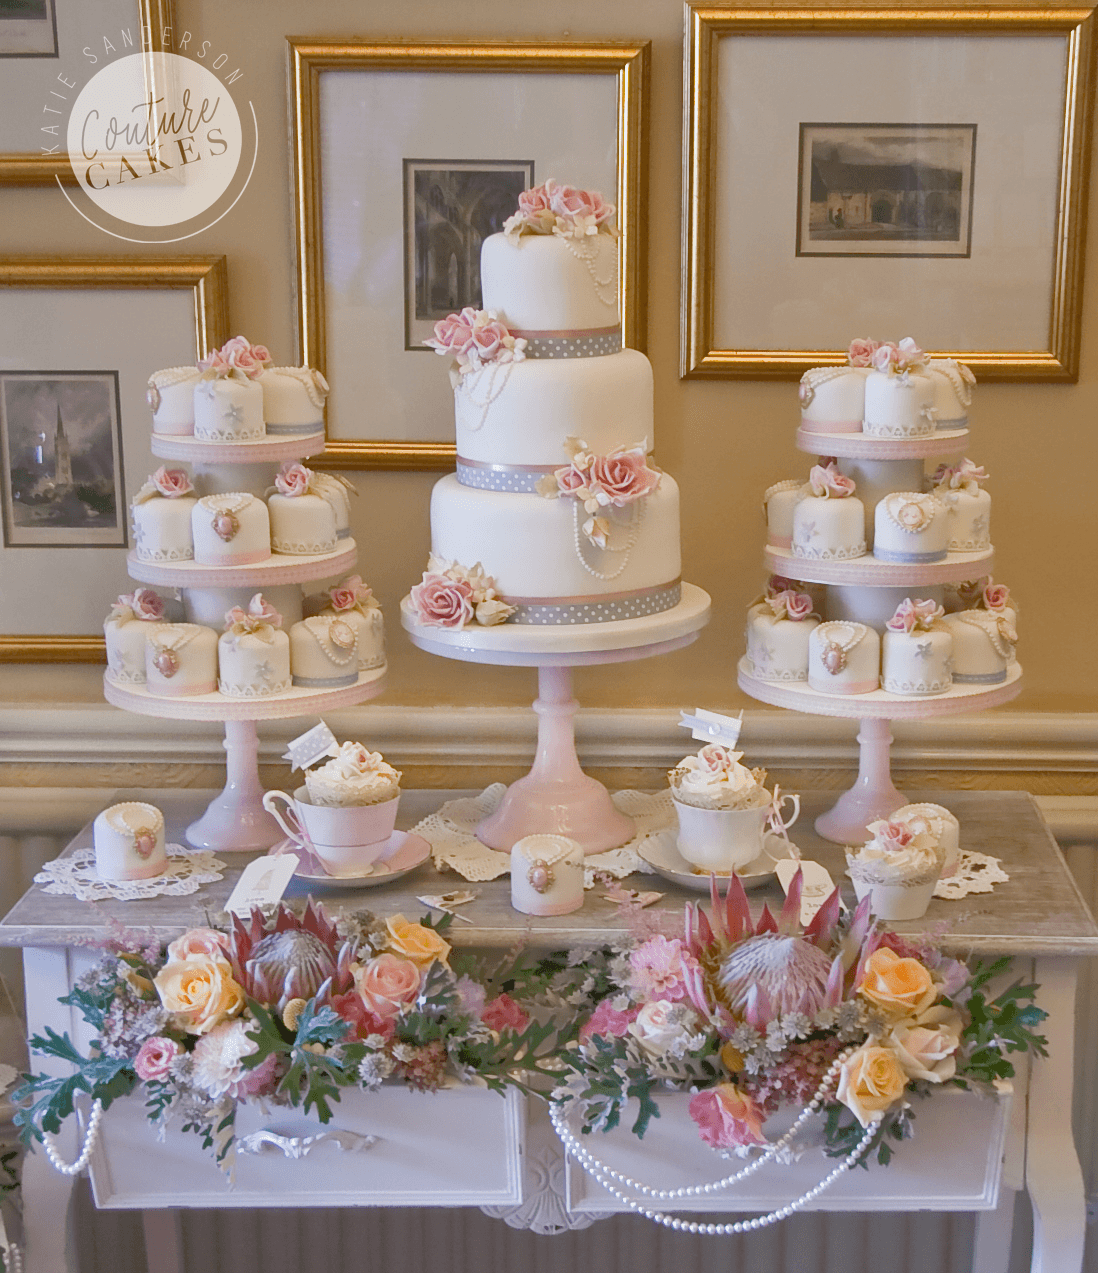 Tiered Cake serves 70 portions, Price £545, plus £420 for 40 mini cakes & tiered stands